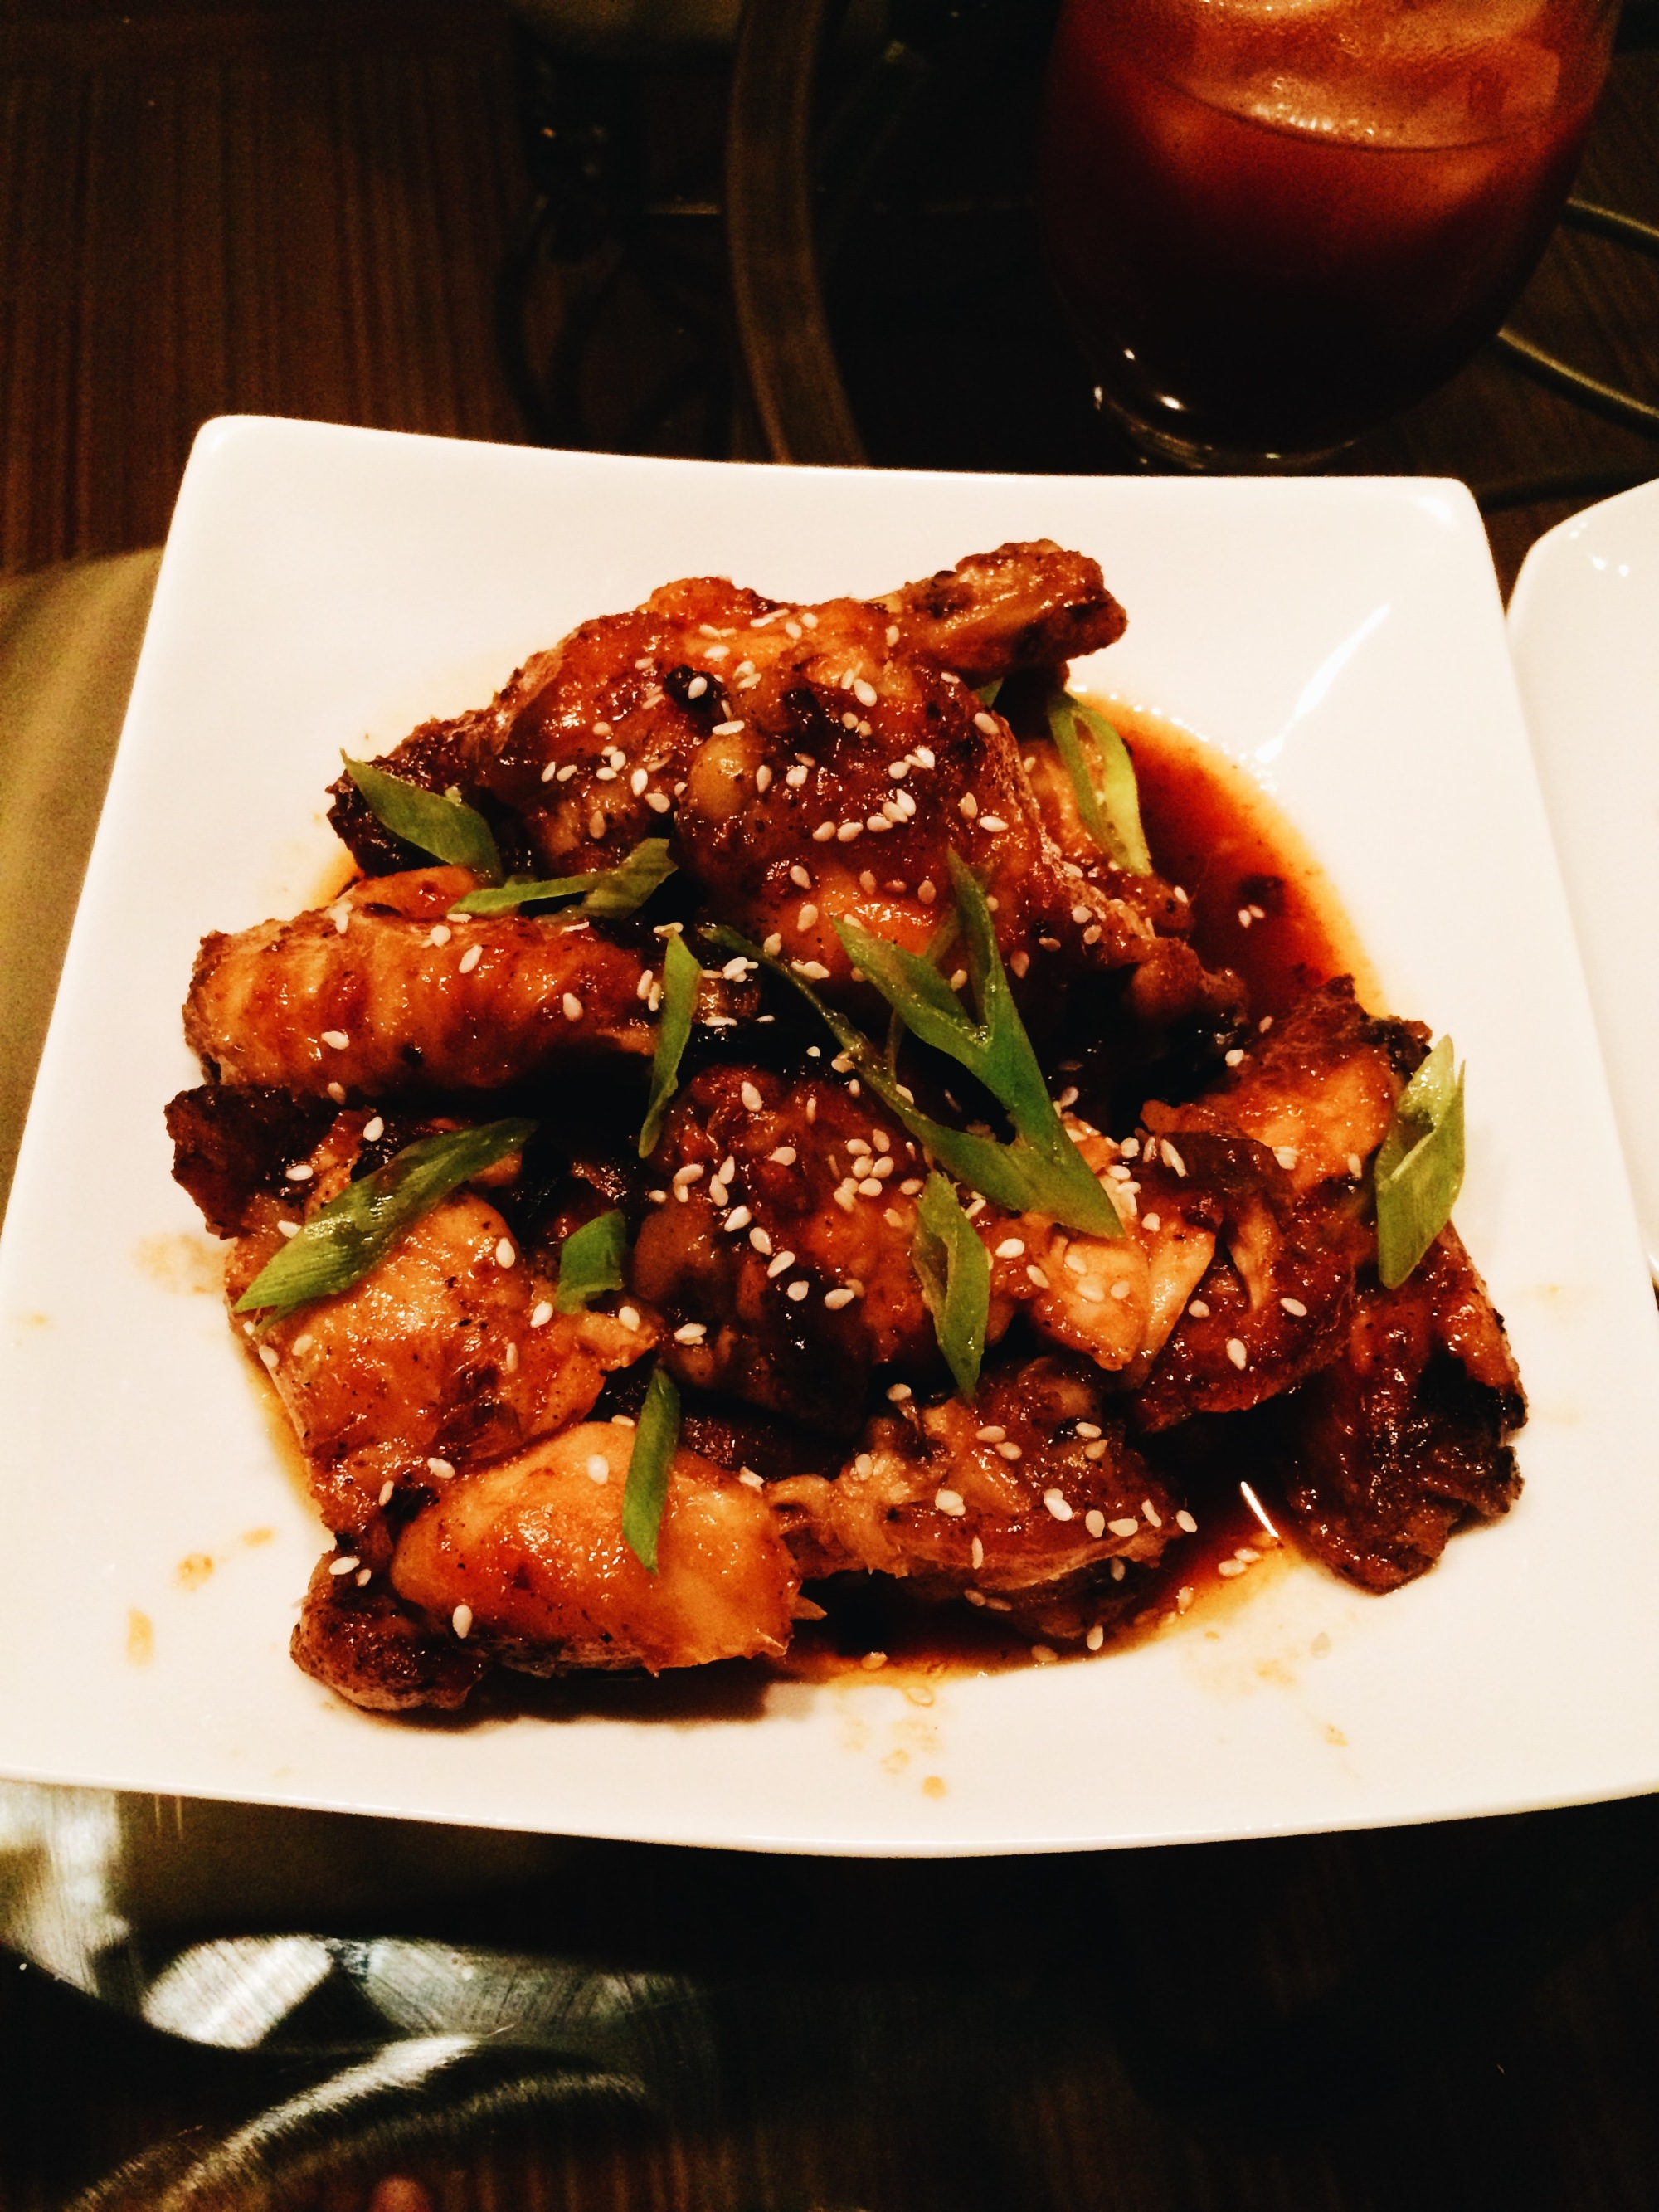 Spicy Asian Fusion Chicken Wings with honey, ginger, and garlic